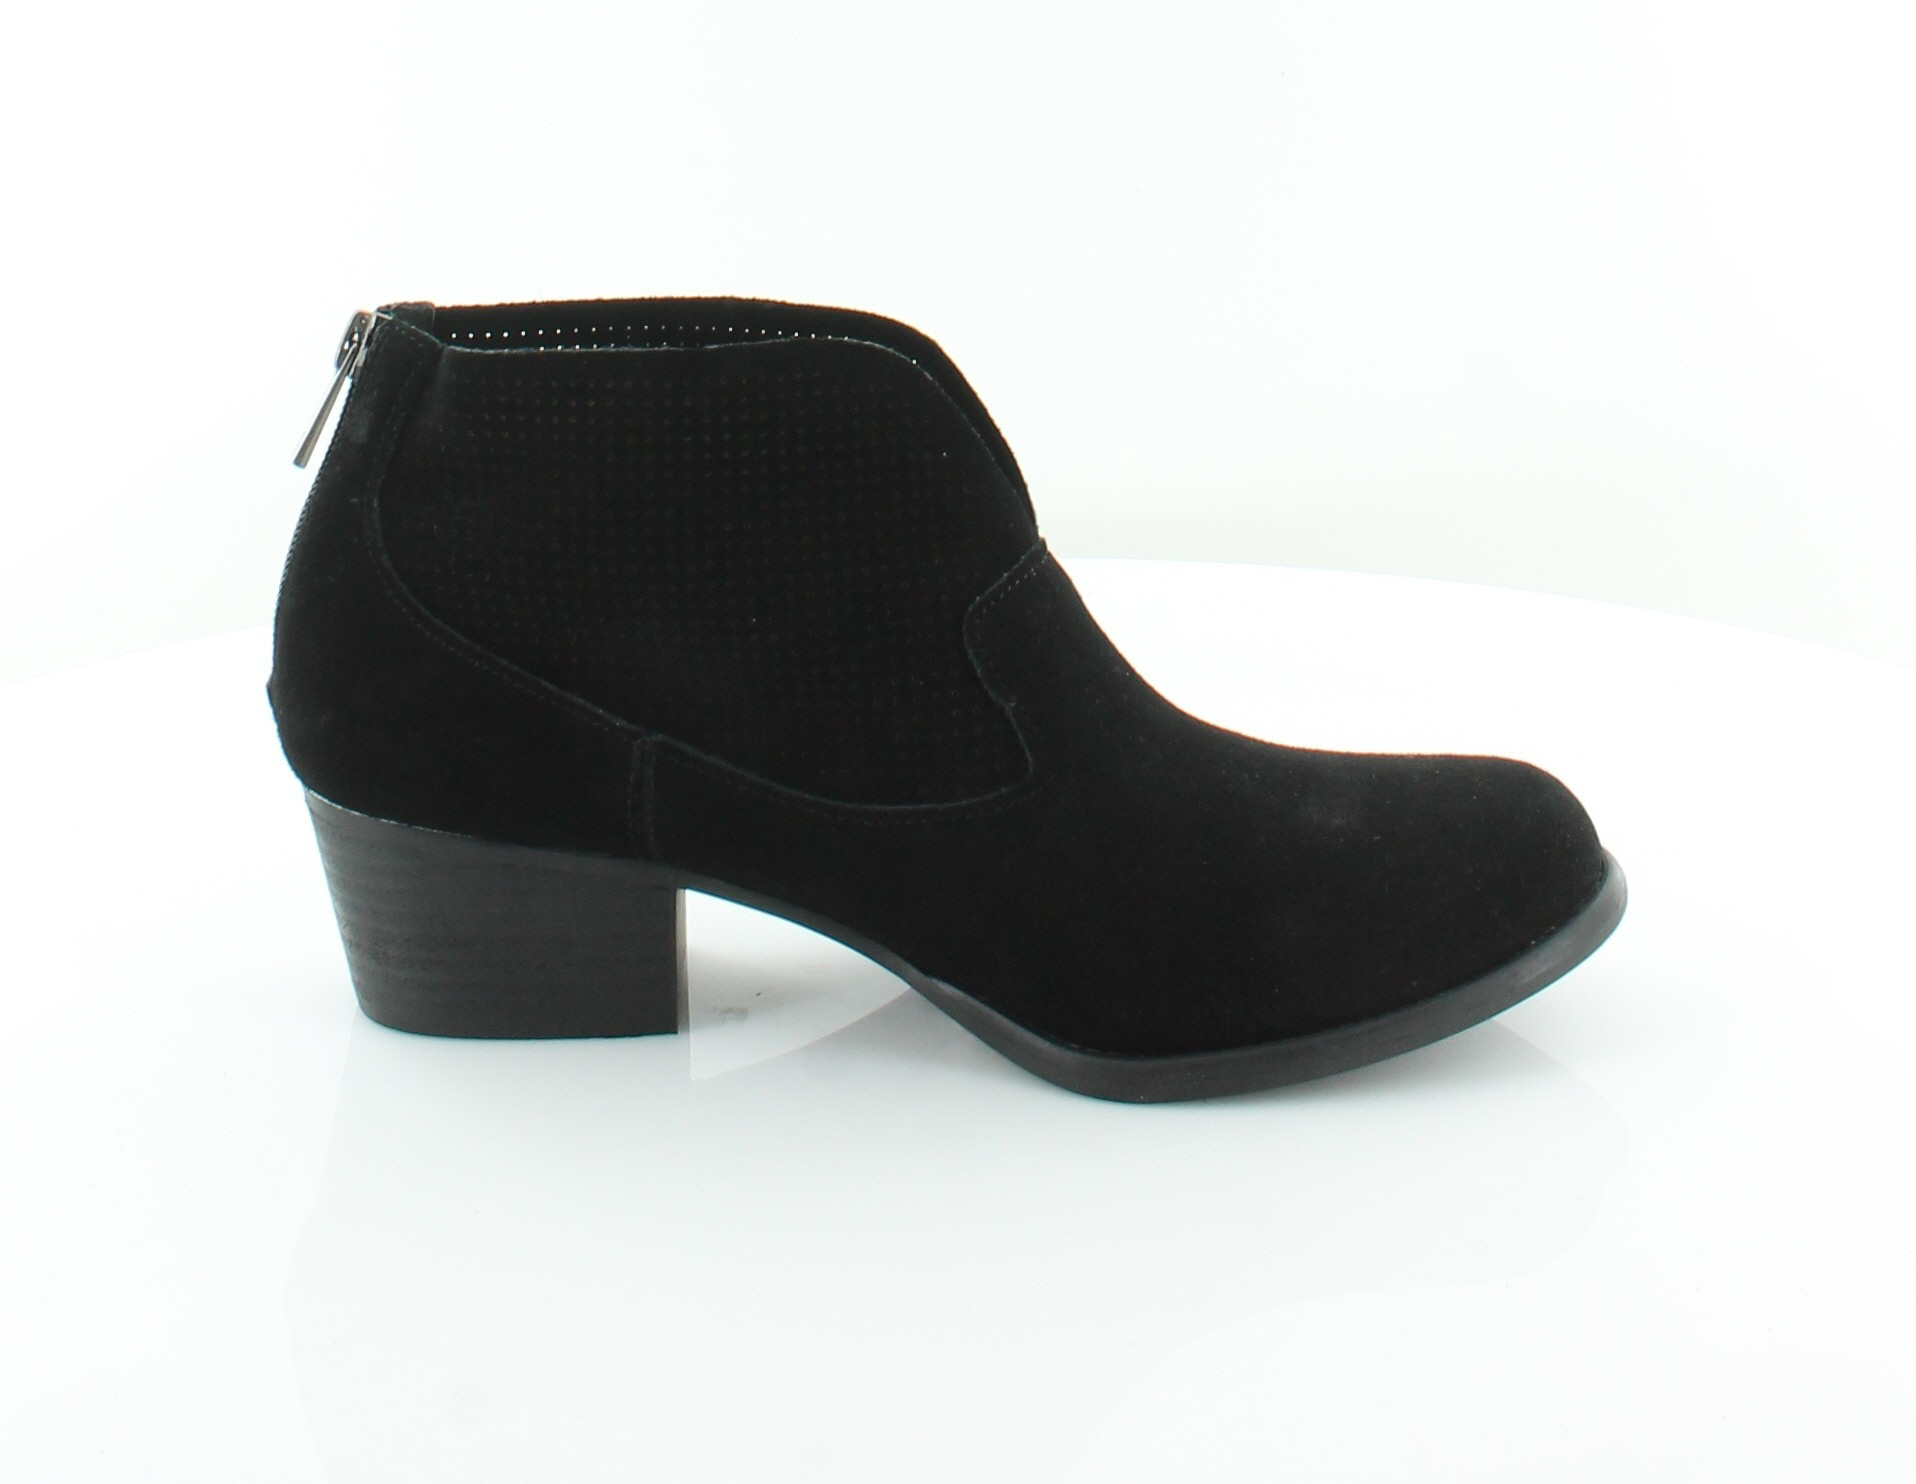 Womens Merona Black Leather Ankle Boots Size US 6.5 TT27